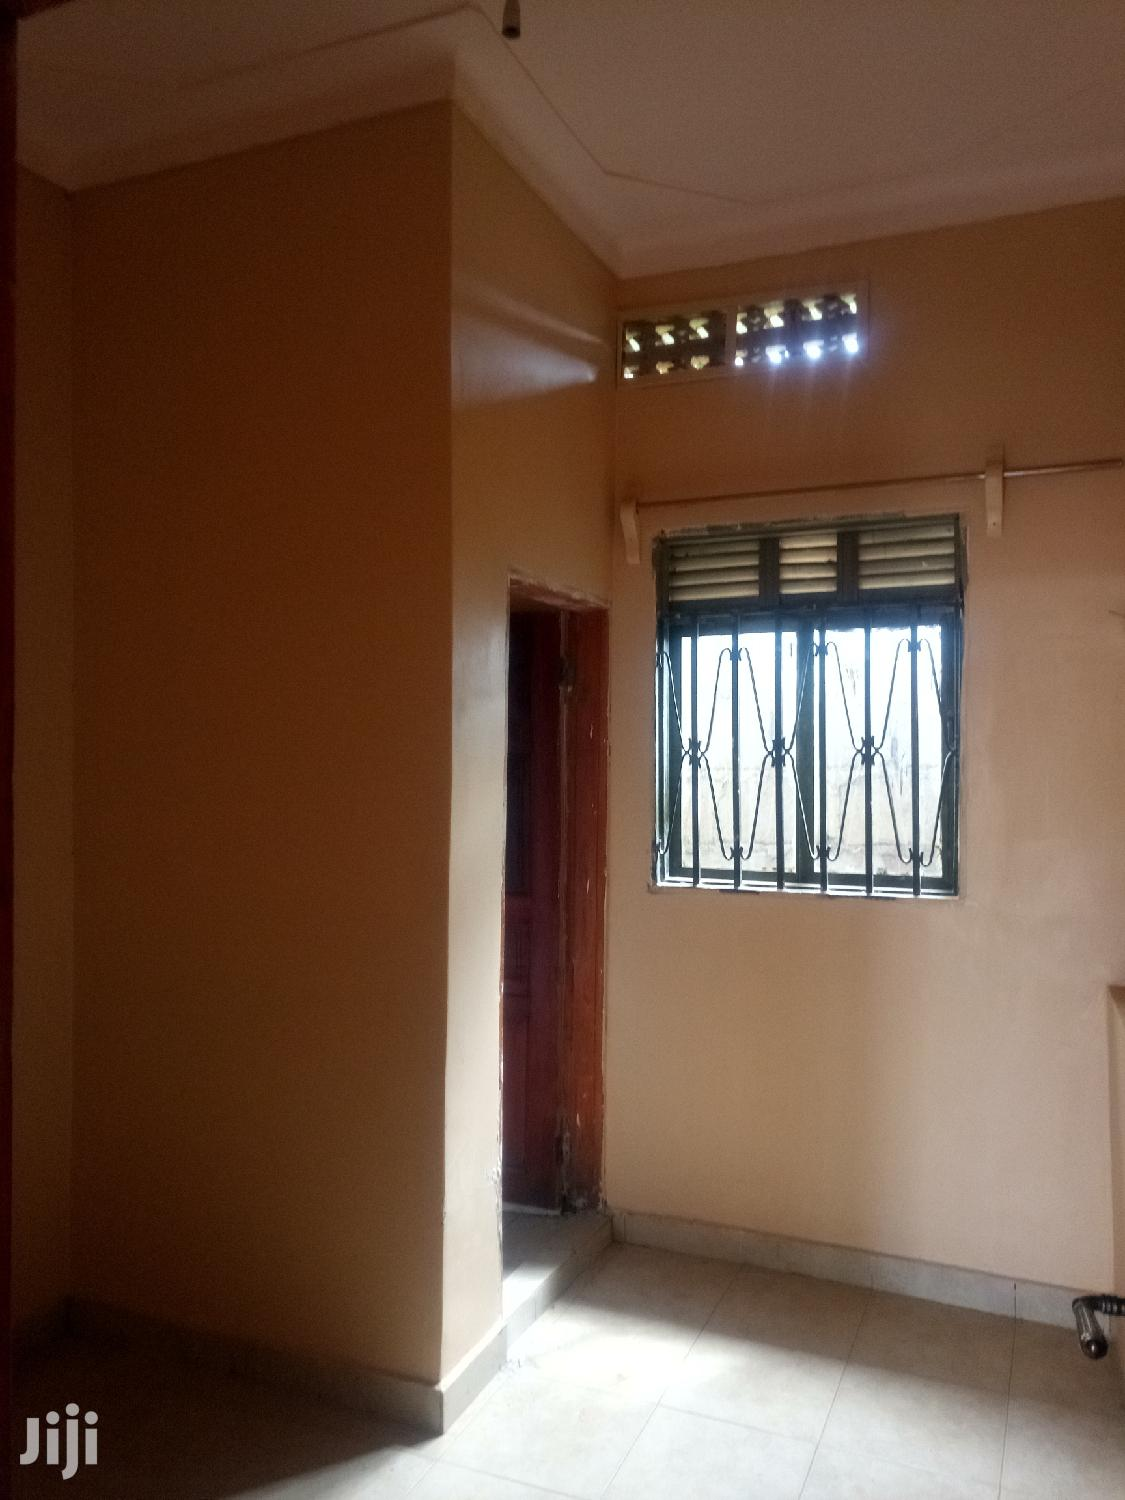 Kyanja Affordable One Bedroom House for Rent | Houses & Apartments For Rent for sale in Kampala, Central Region, Uganda